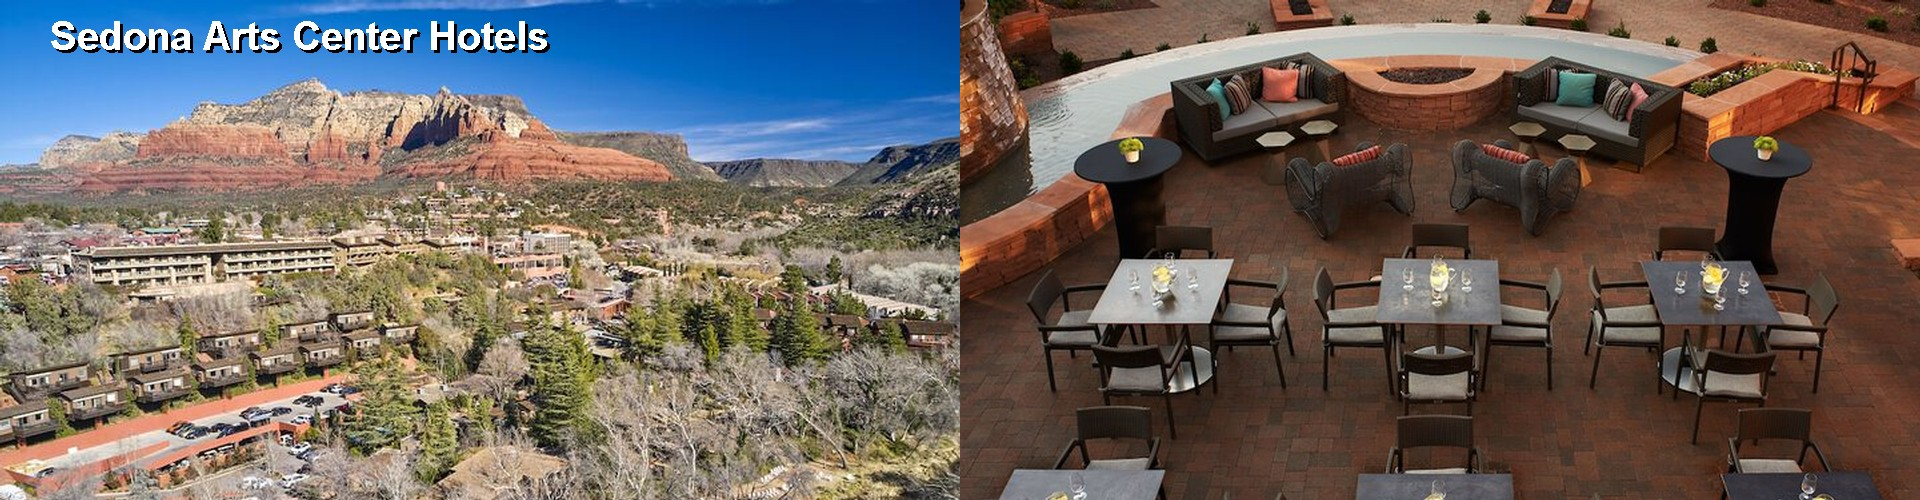 5 Best Hotels near Sedona Arts Center